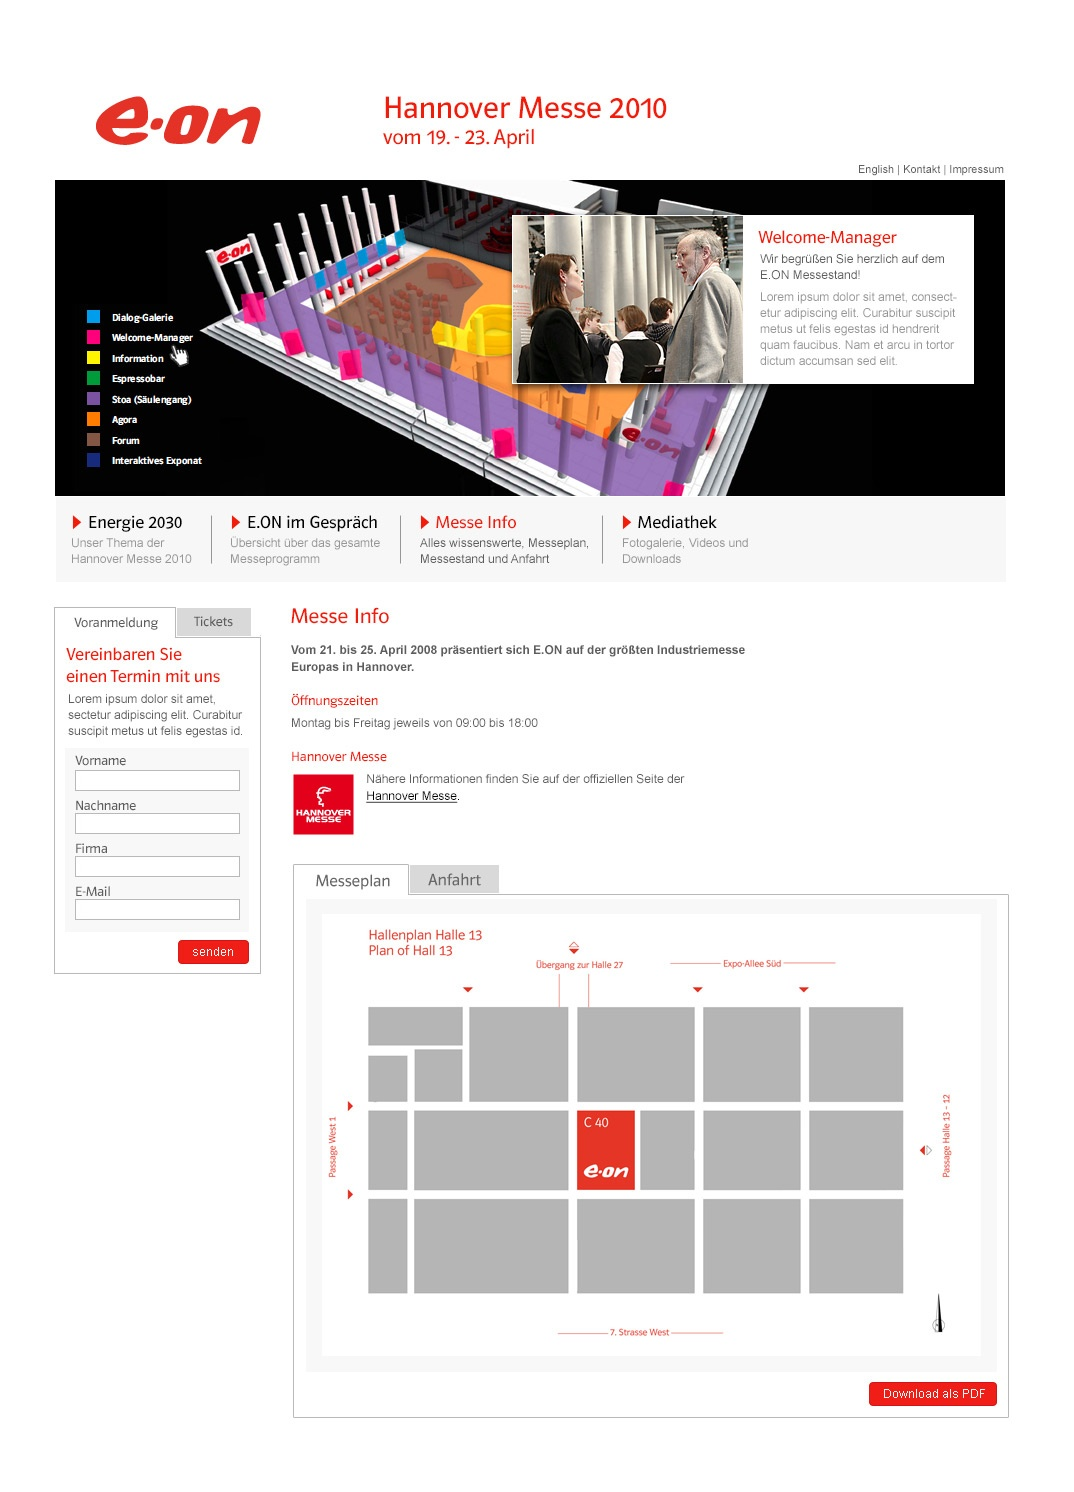 E.ON Microsite Hannover Messe 2010 Stefie Plendl